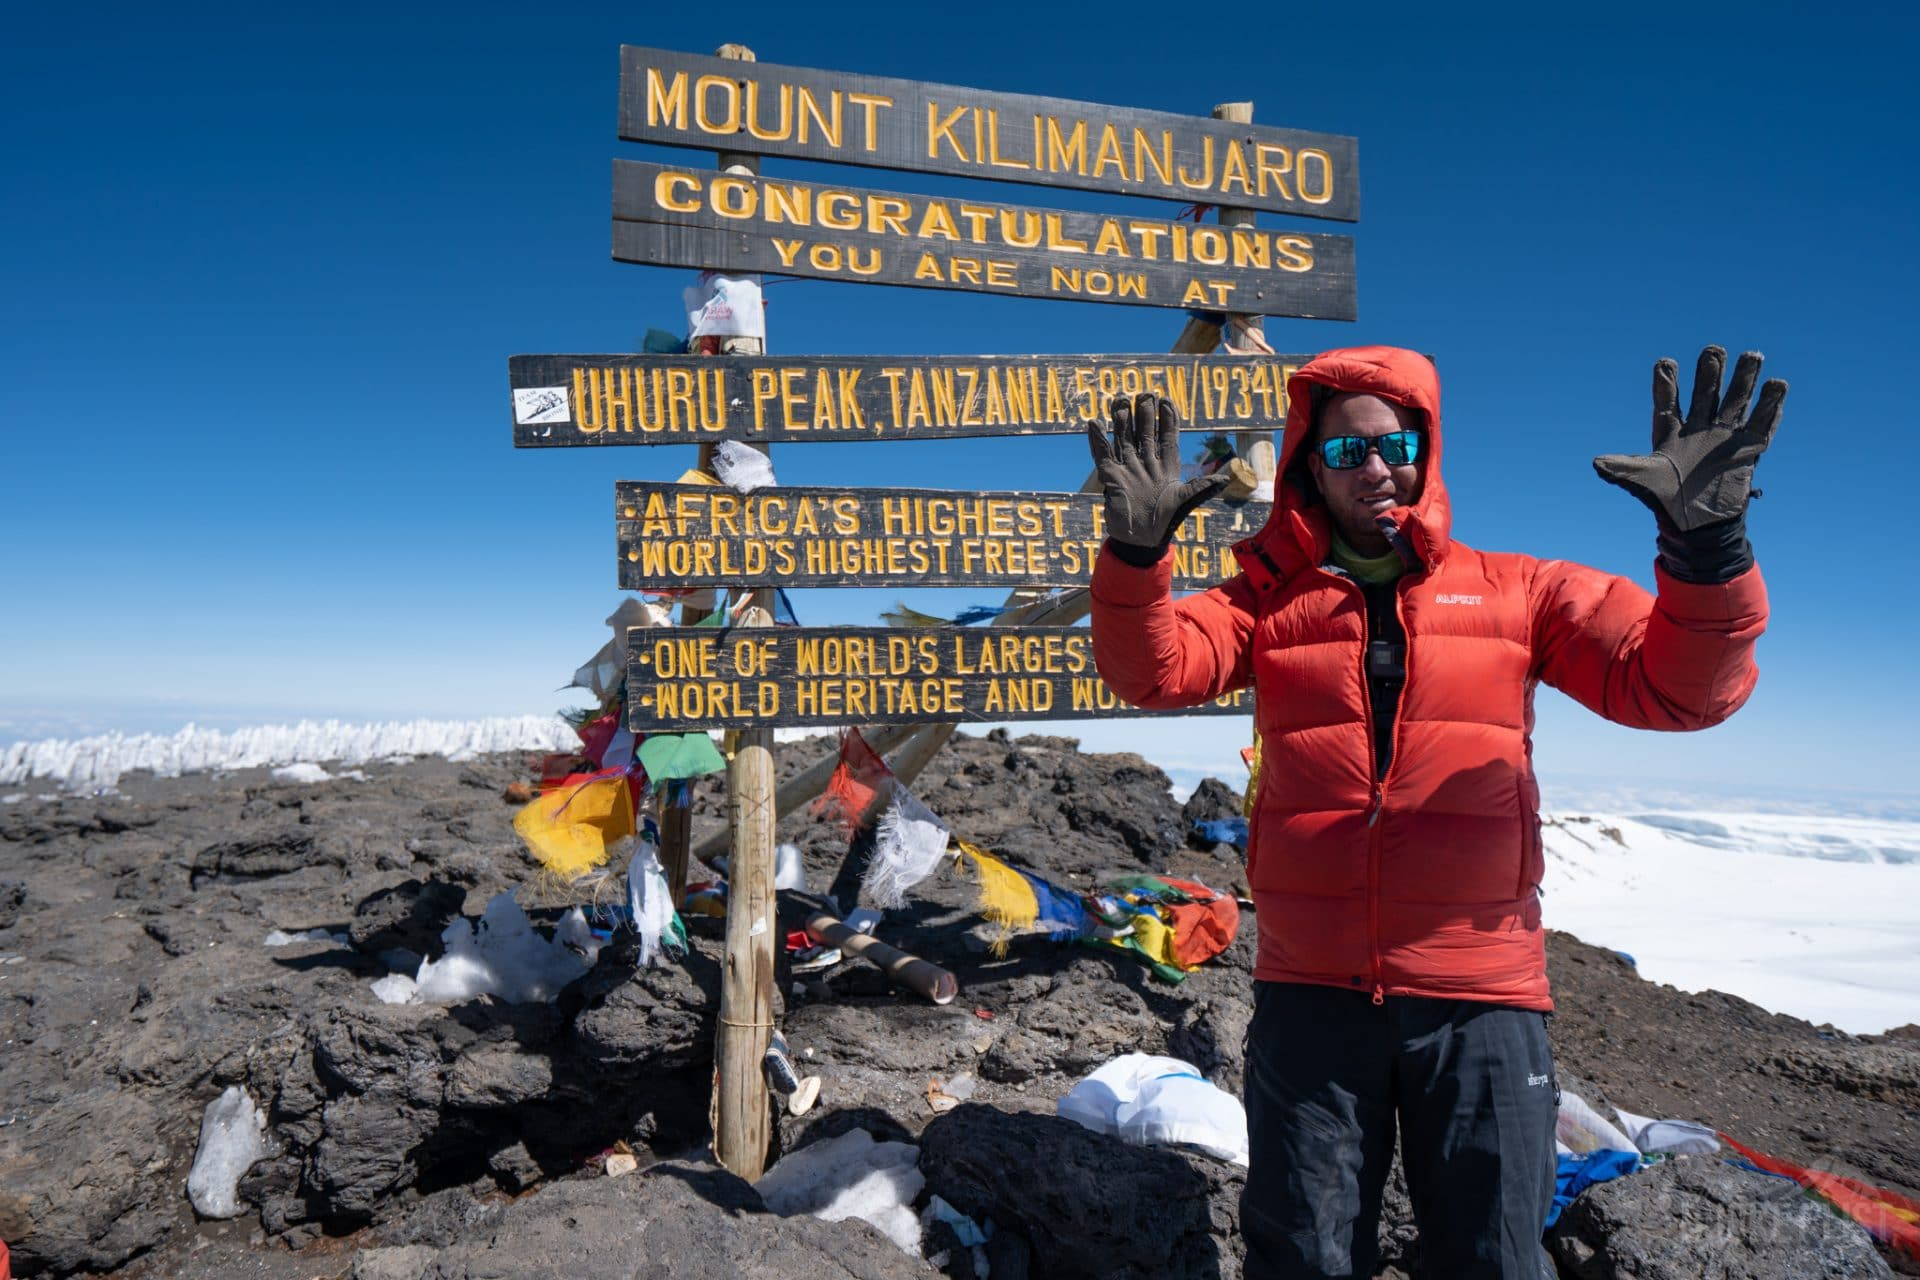 Keith climbing Mount Kilimanjaro for the 10th time